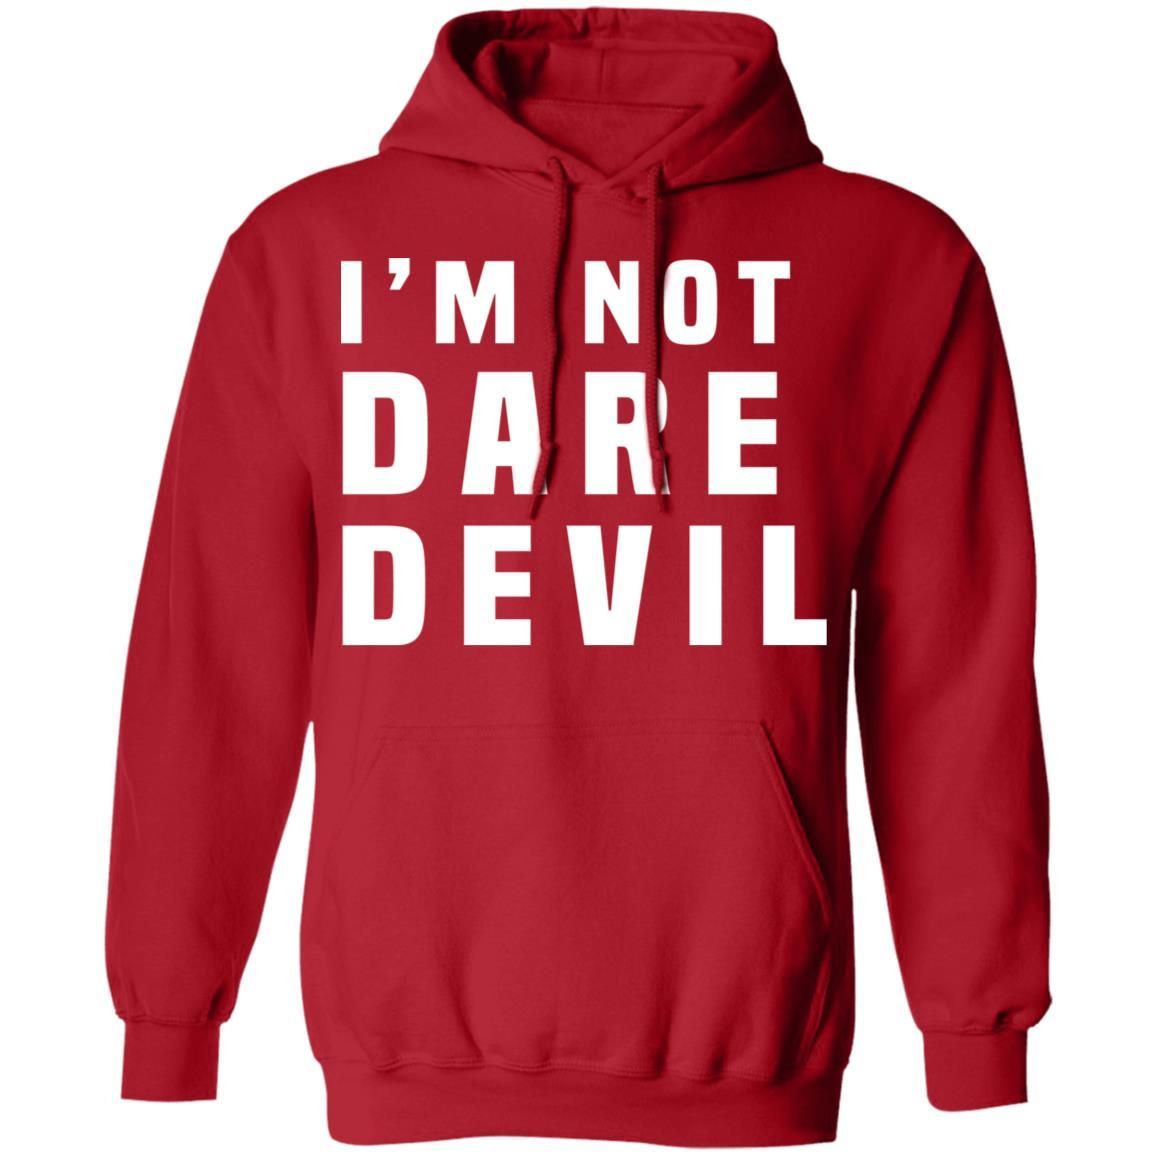 I'm Not Dare Devil T-Shirts, Hoodies 541-4764-87589166-23167 - Tee Ript